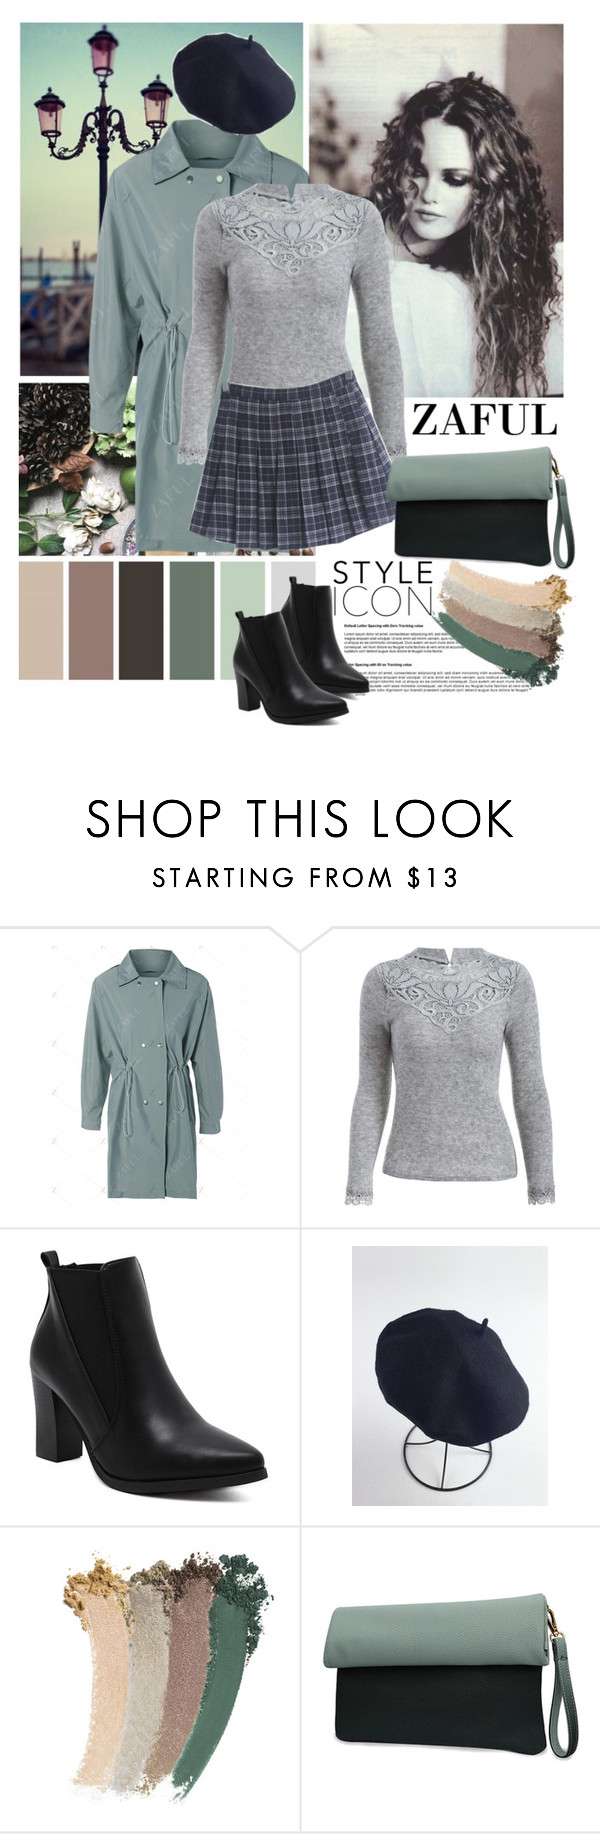 """""""Zaful"""" by ruza-b-s ❤ liked on Polyvore featuring Cinque, Gucci and zaful"""